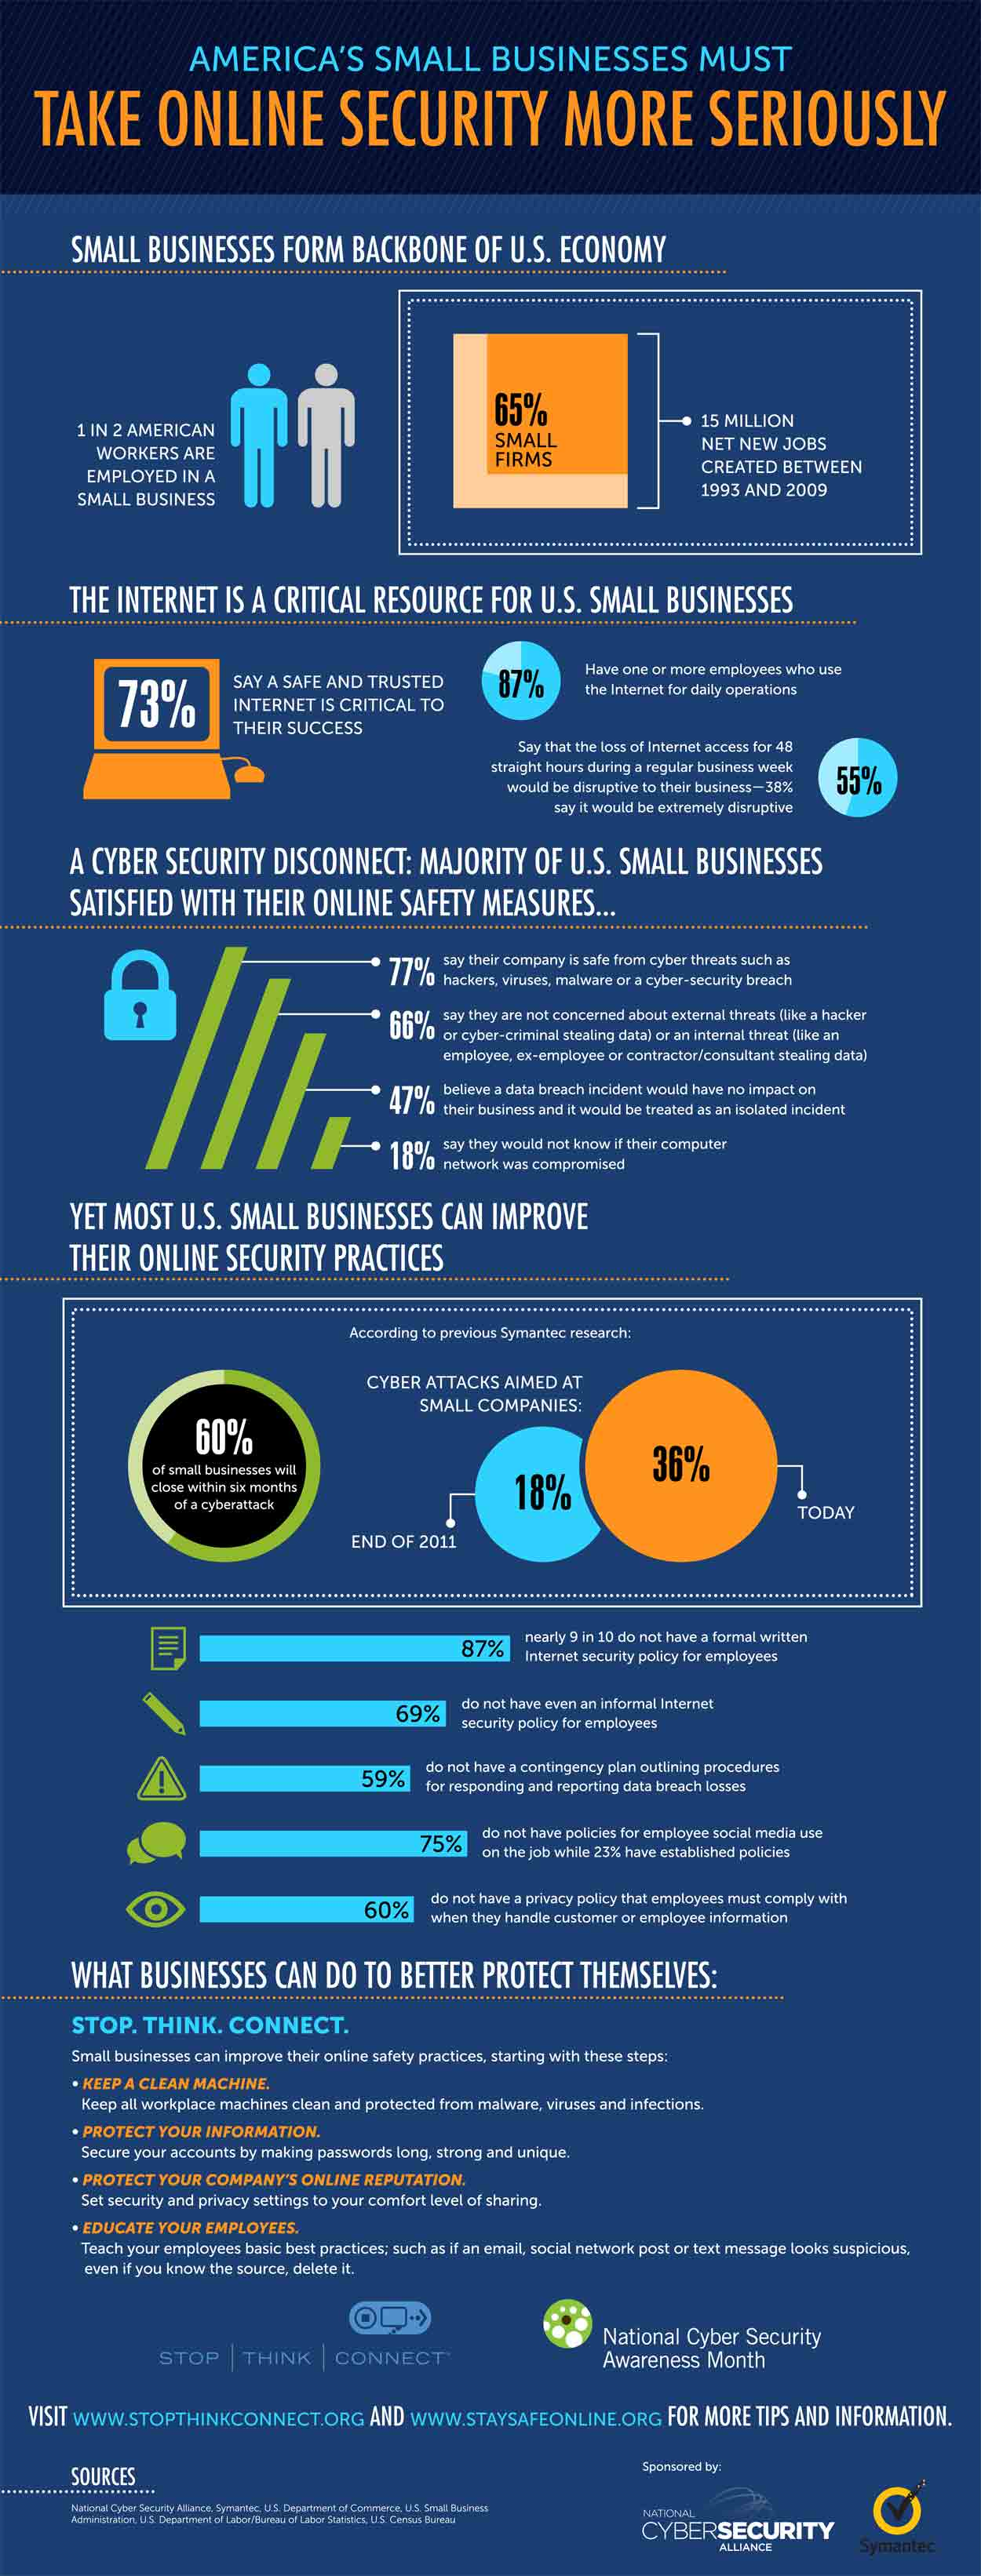 10 Cyber Security Tips For Small Business Infographic